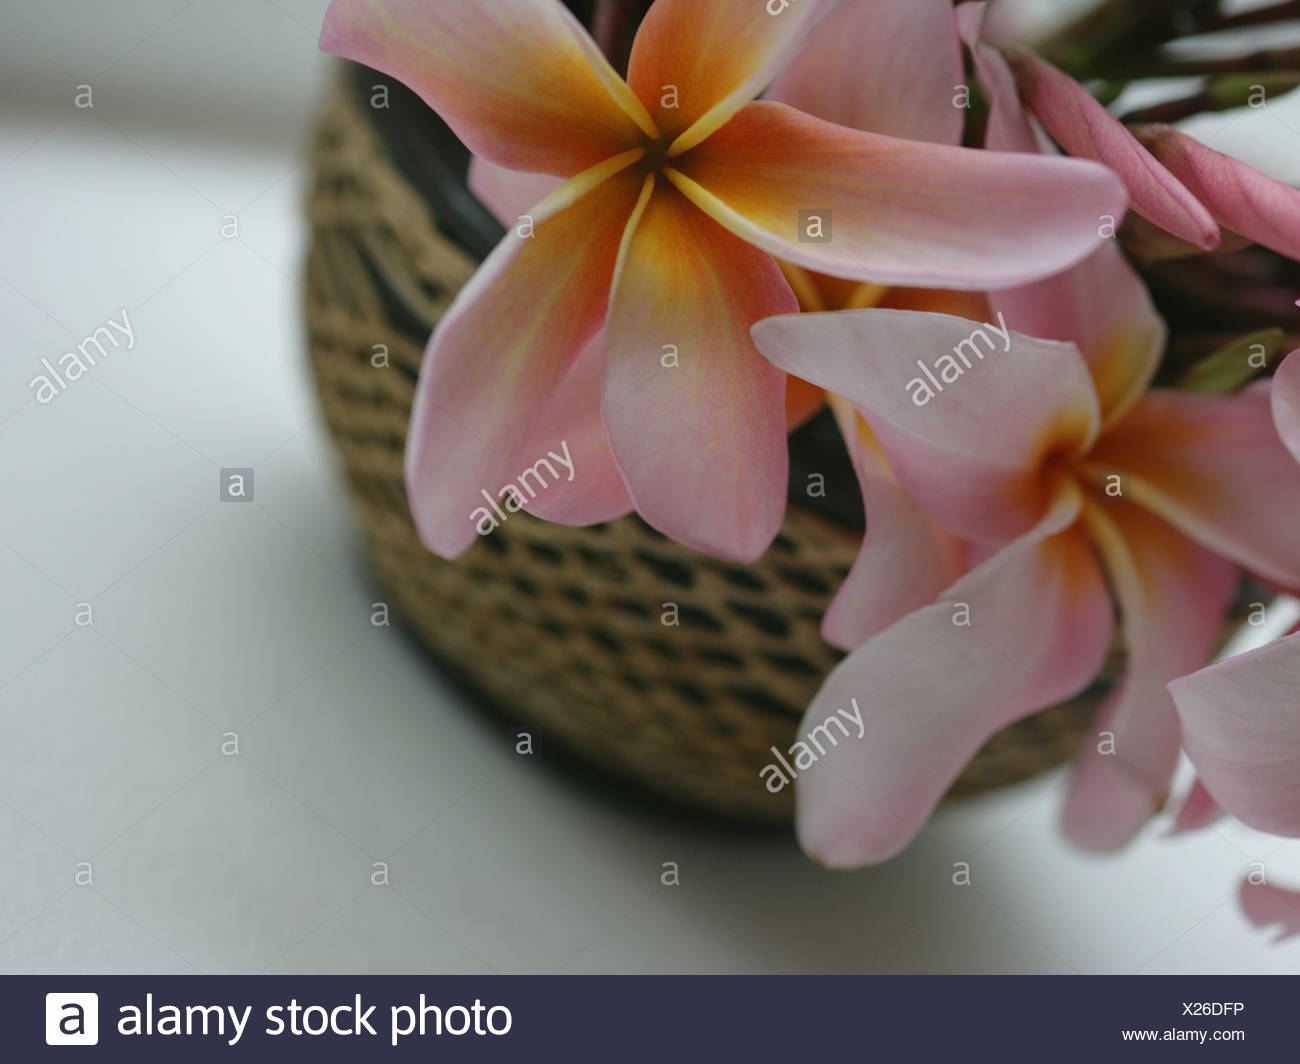 Close-up of flowers in a wicker basket - Stock Image